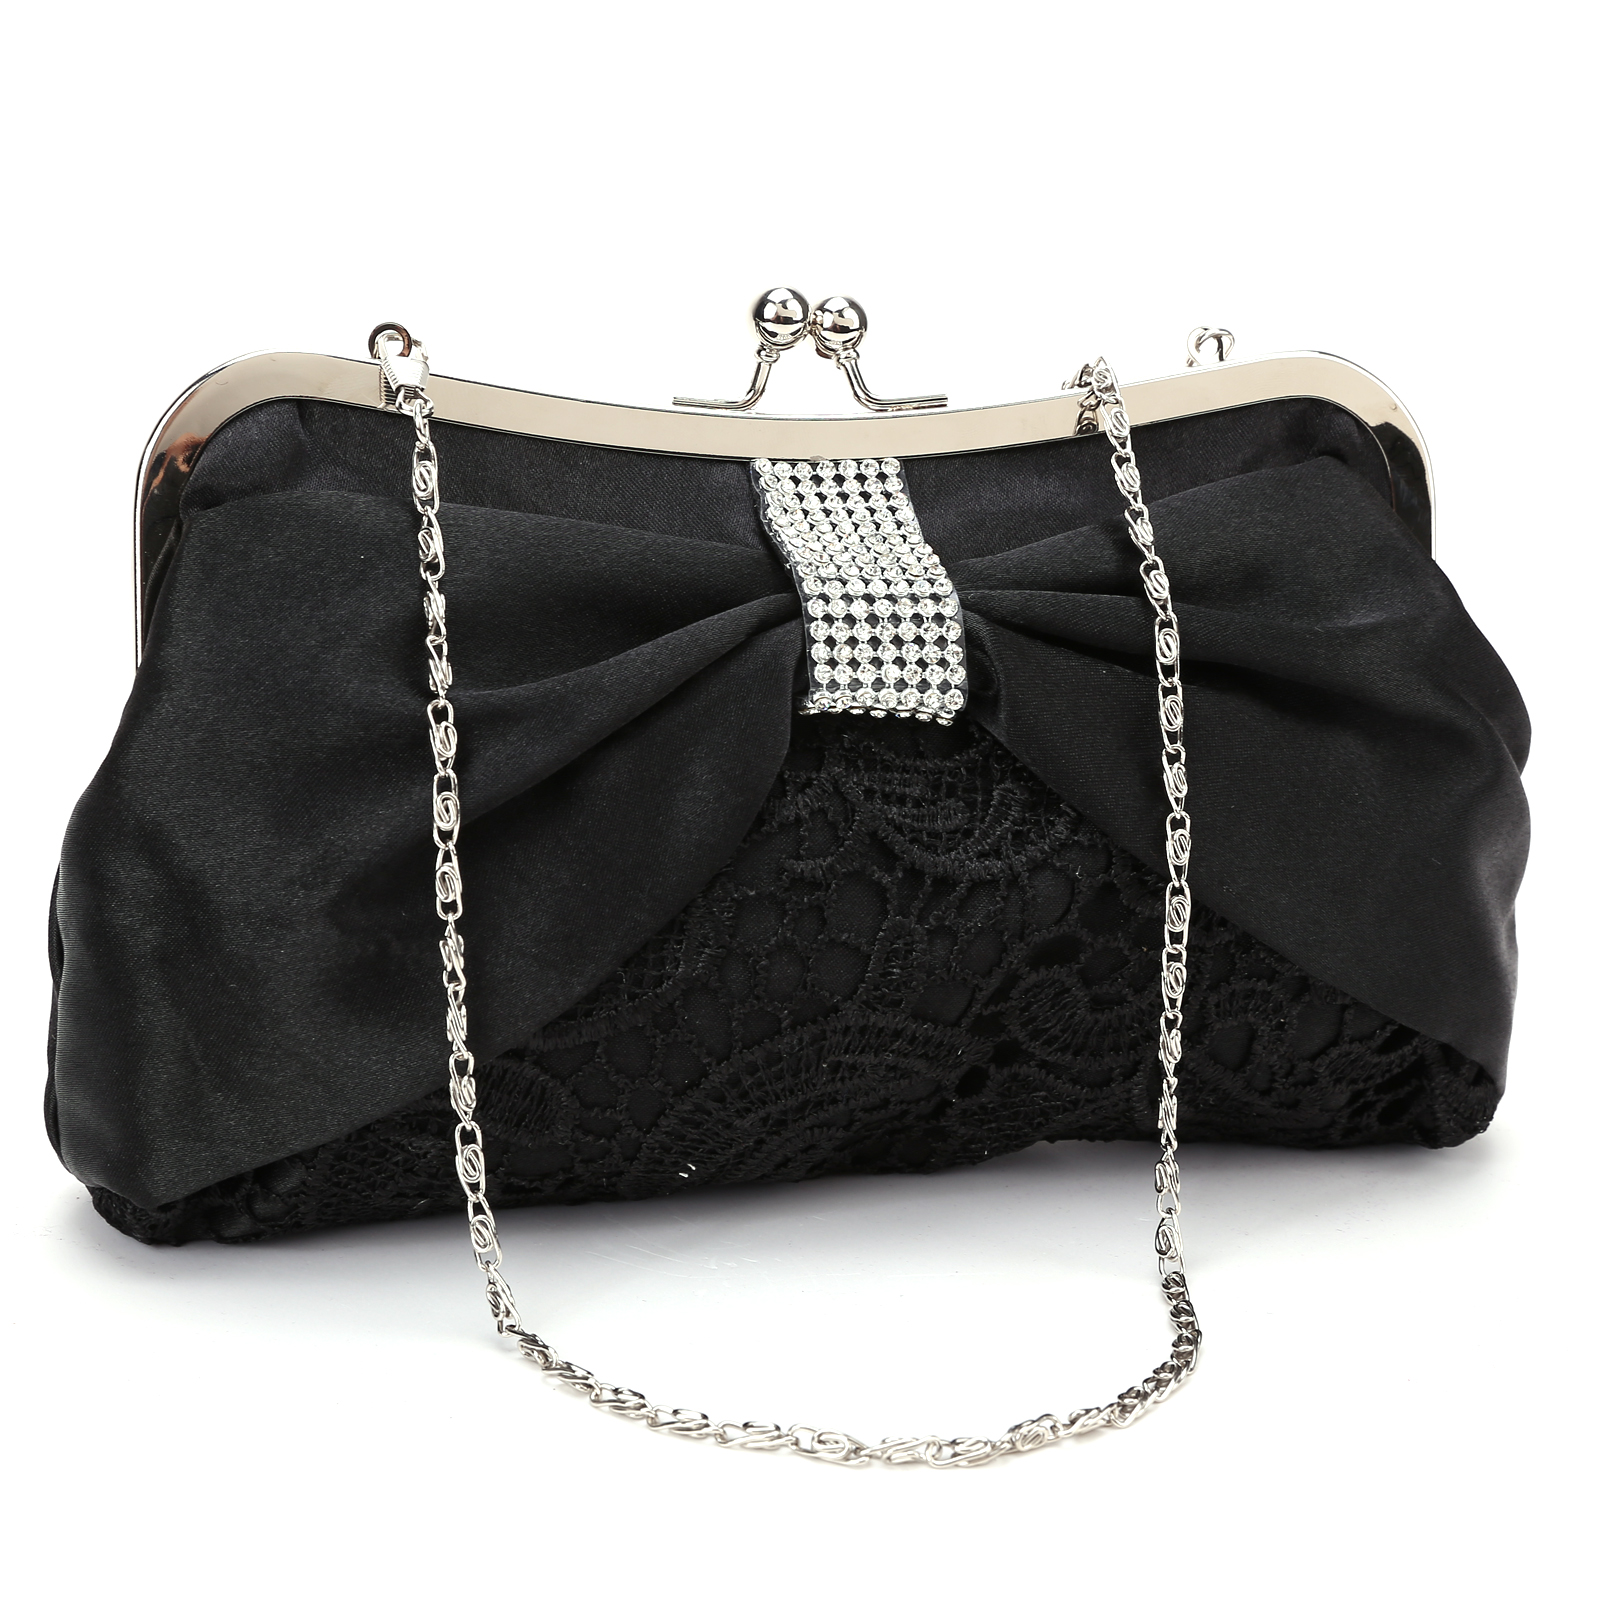 Clutches & Evening Bags: Free Shipping on orders over $45 at gothicphotos.ga - Your Online Shop By Style Store! Get 5% in rewards with Club O!